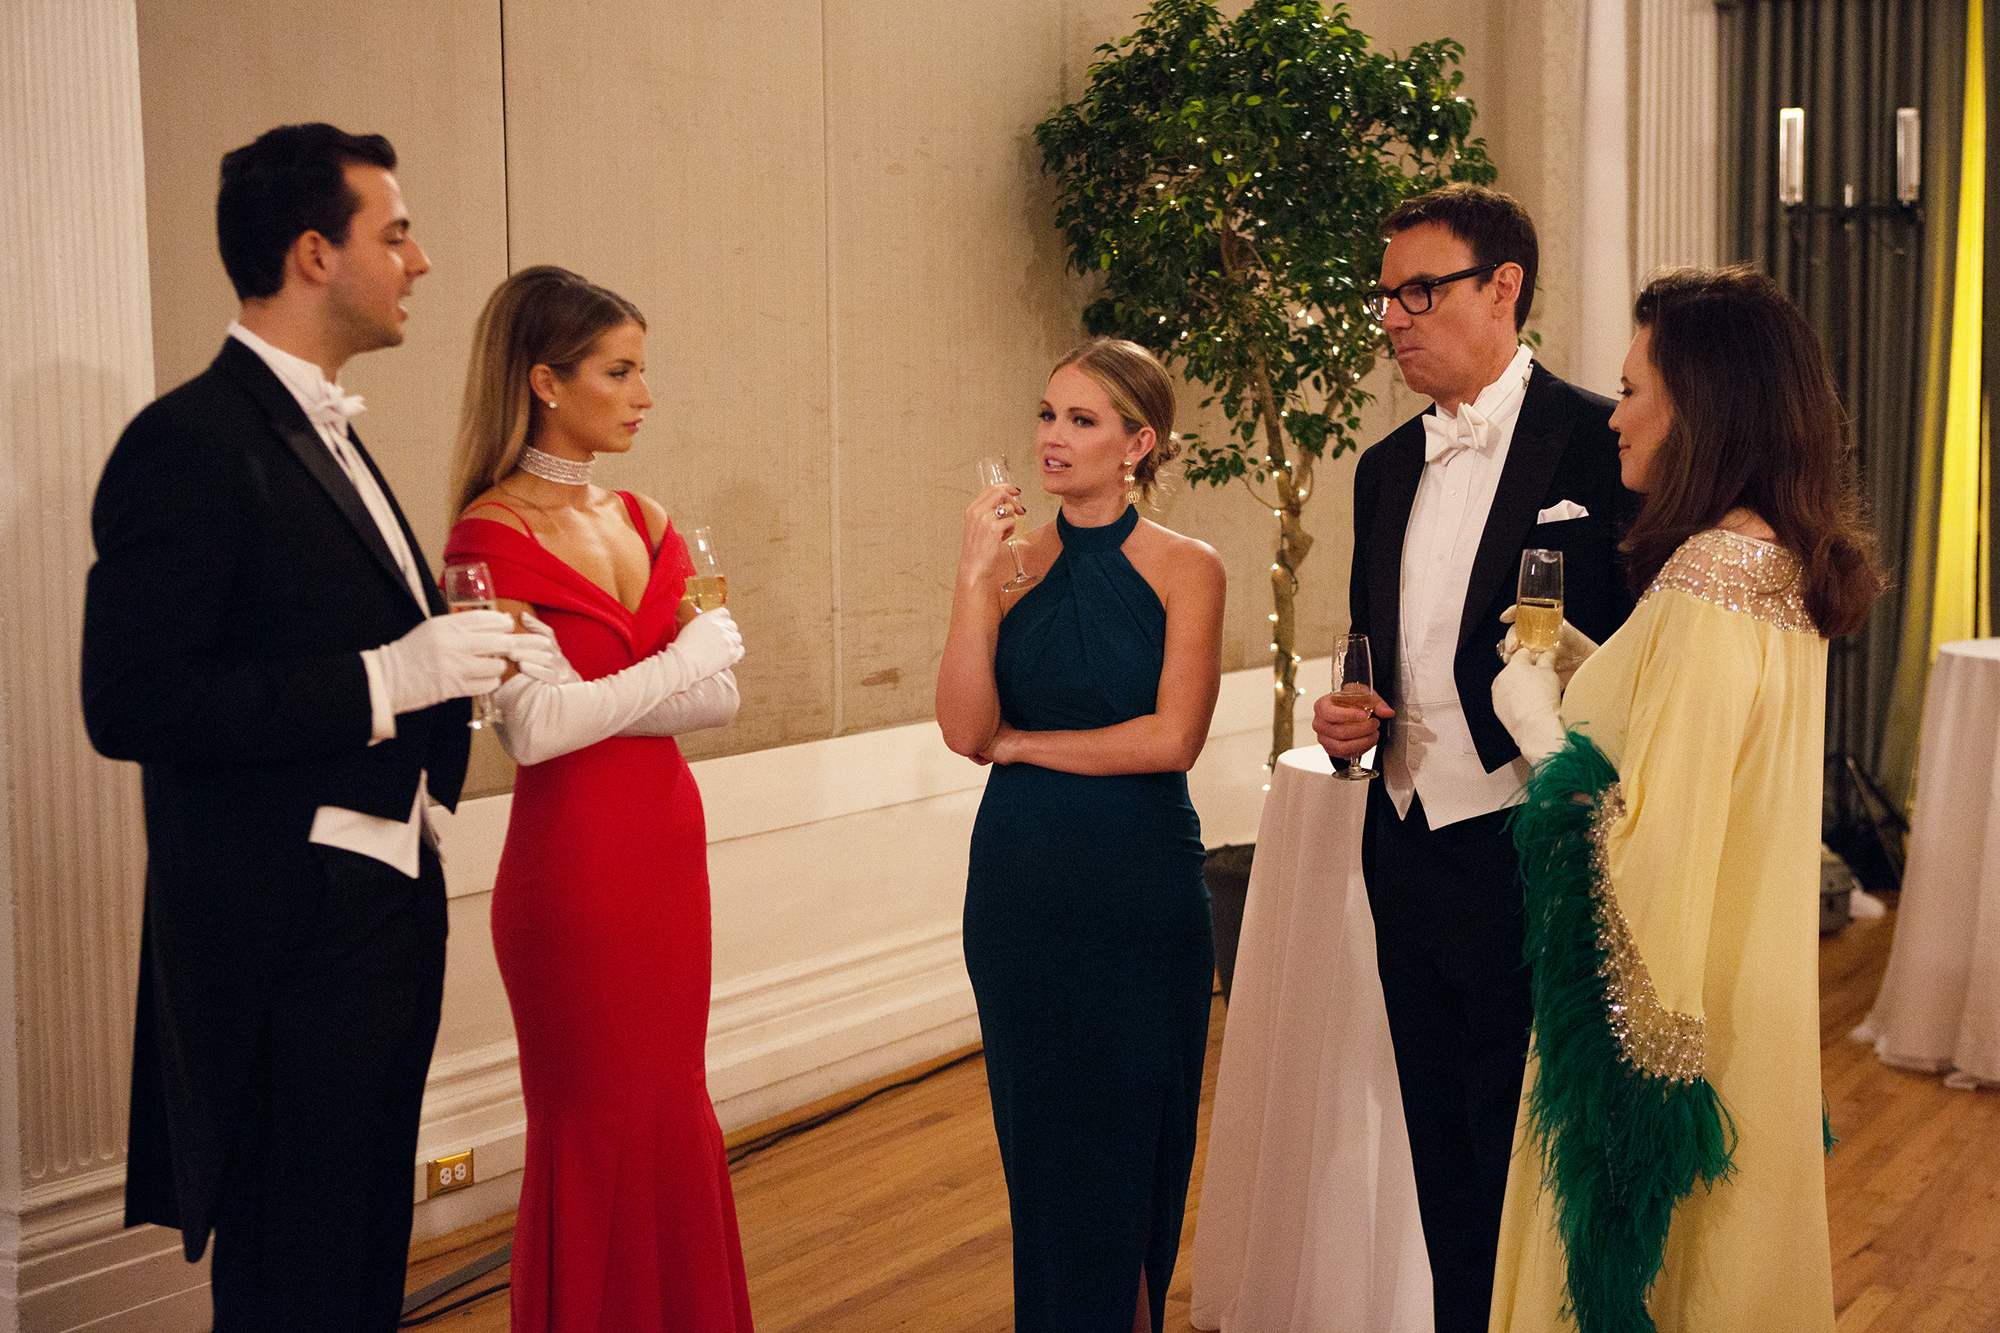 """Everything We Know About 'Southern Charm' Season 6 - According to a source, Southern Charm season 6 is currently set to feature 10 episodes. """"Even though they started filming later, it's still ending at the same time and will be a short amount of time to film,"""" per the source."""